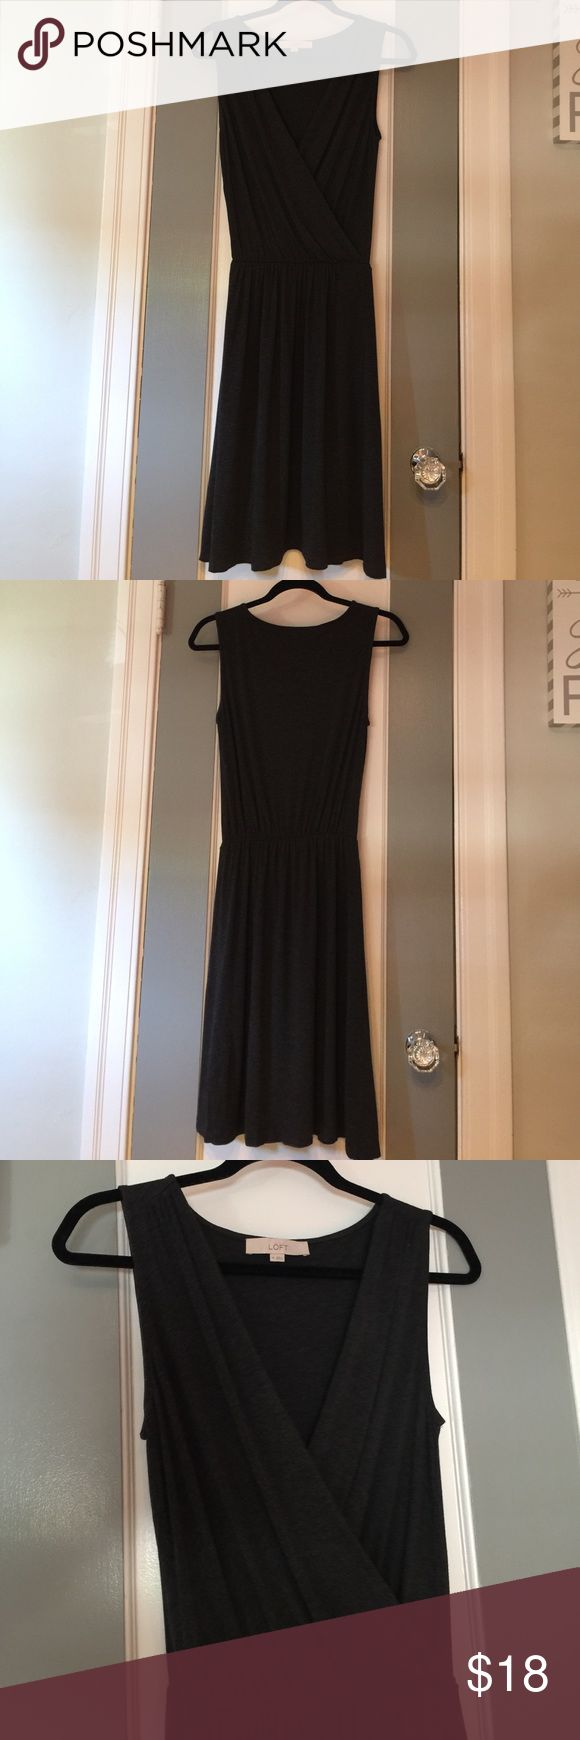 Dark Heather Gray Loft Dress Worn once or twice but slightly too big for me. Would fit someone better in size Small, even Medium. Super comfy material. Good for causal or dress up for work. LOFT Dresses Midi